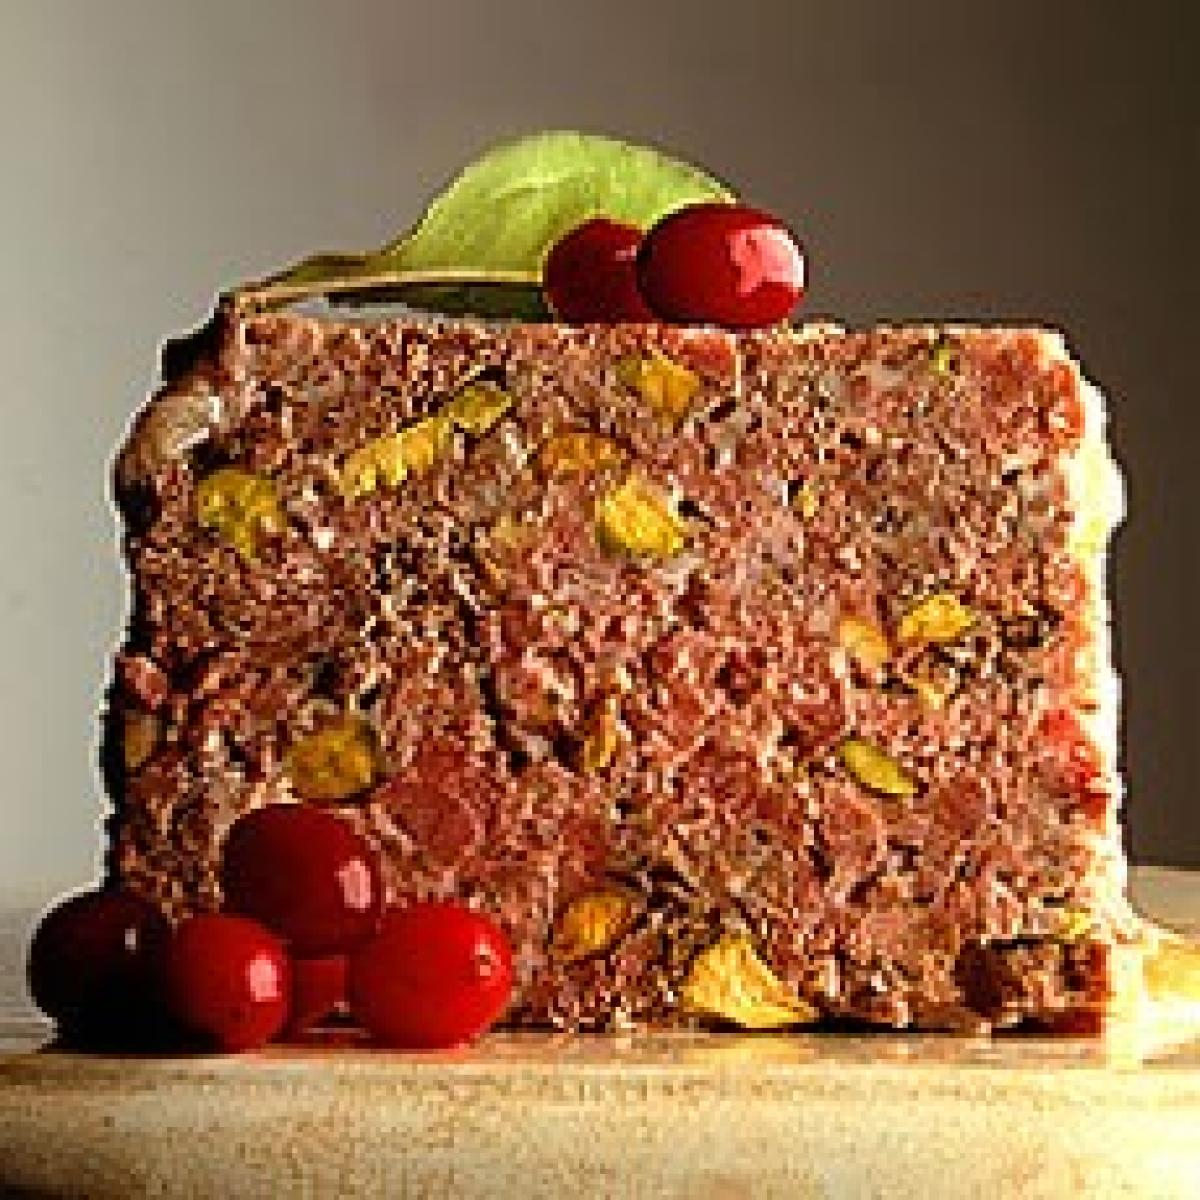 A picture of Delia's Terrine of Venison with Juniper and Pistachio Nuts and Cranberry and Orange Compote recipe